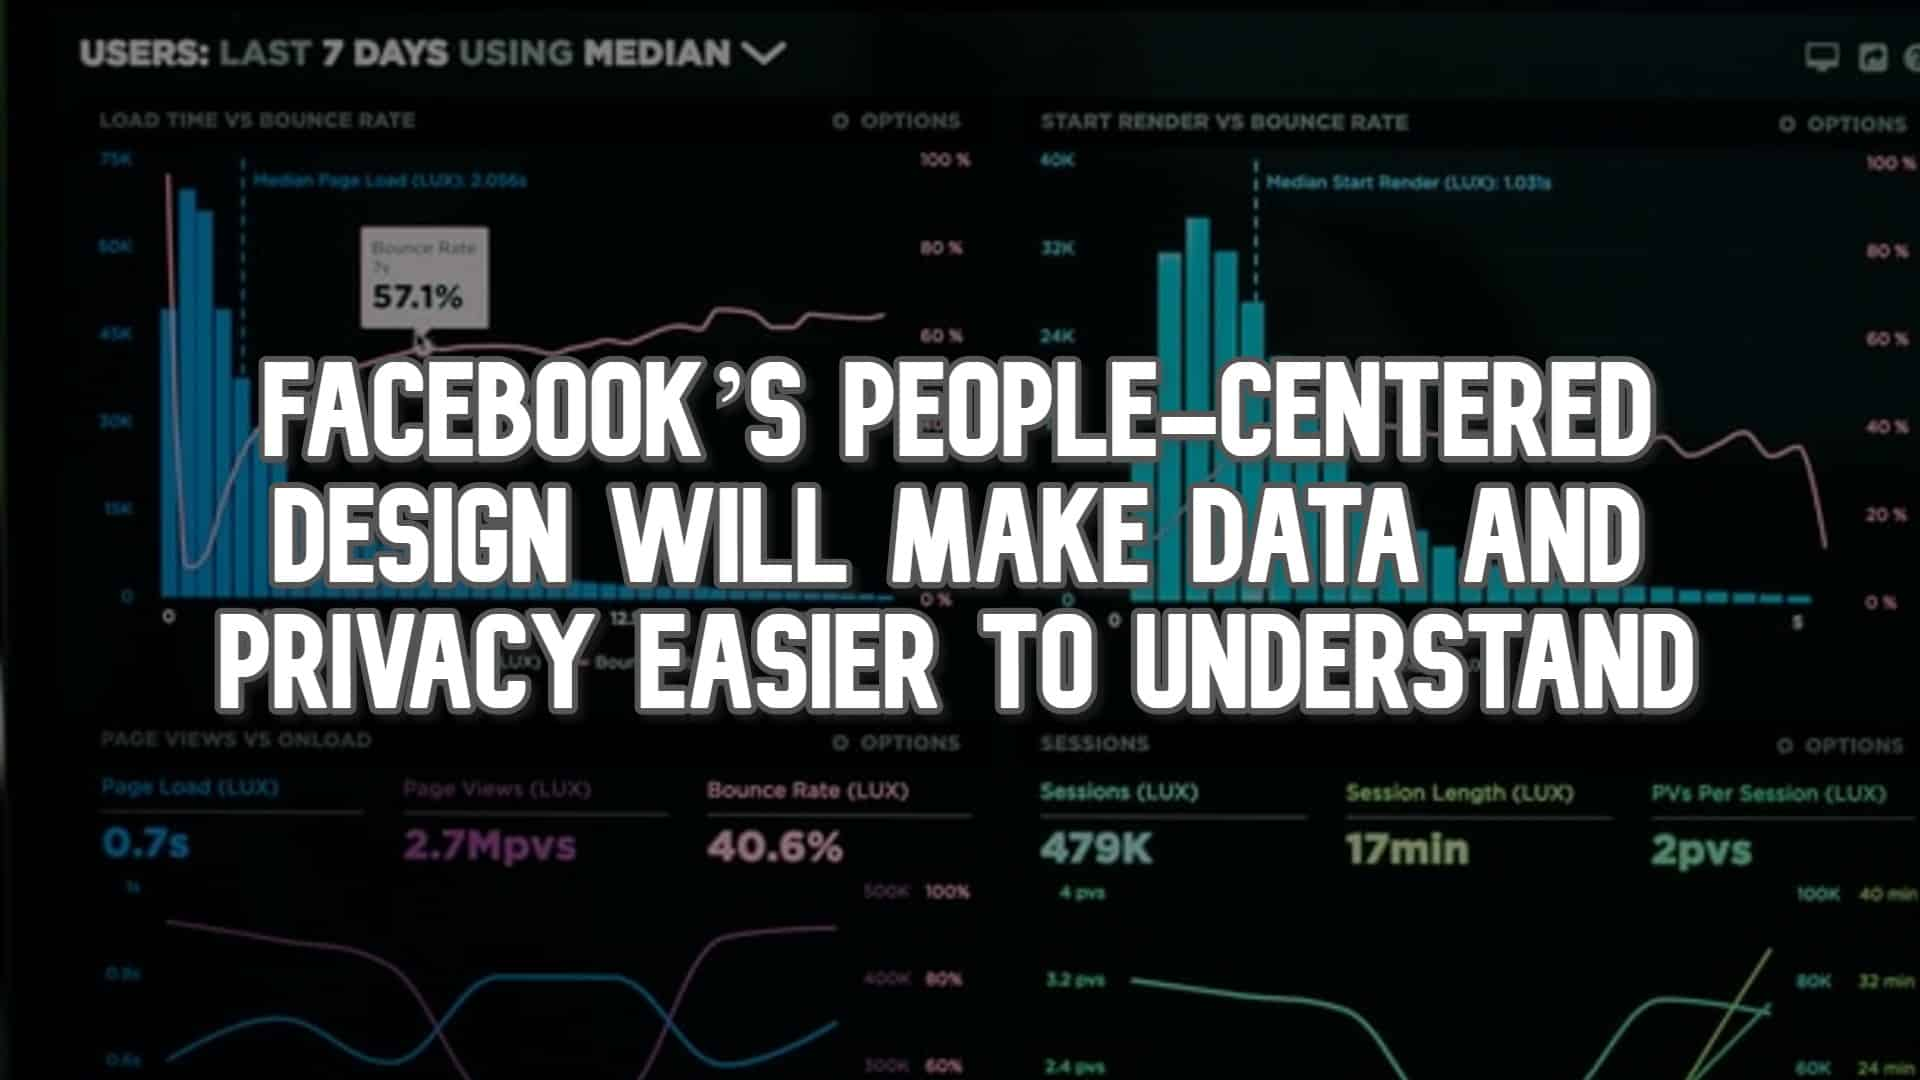 Facebook's People-Centered Design will Make Data and Privacy Easier to Understand